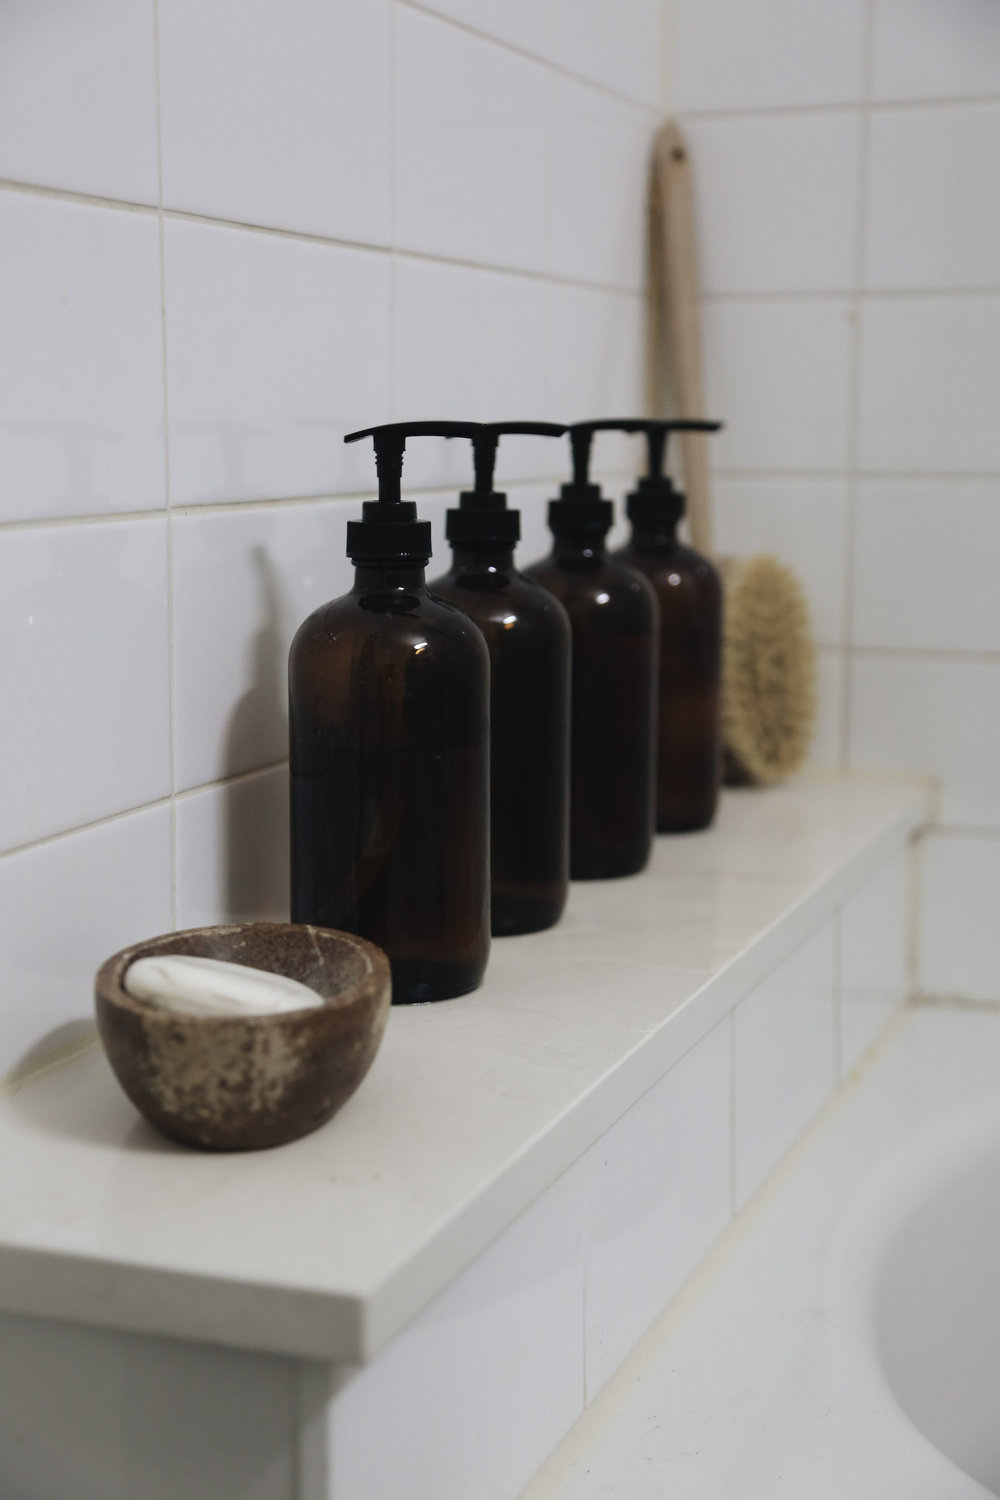 To keep our small bathroom from feeling too small, we kept decor to a minimum. Our daily soaps were transferred to plain  brown bottles , and along with a small wooden bowl used as a soap dish ( similar option ) and  body brush , were the only things kept out. All other products were kept under the sink.